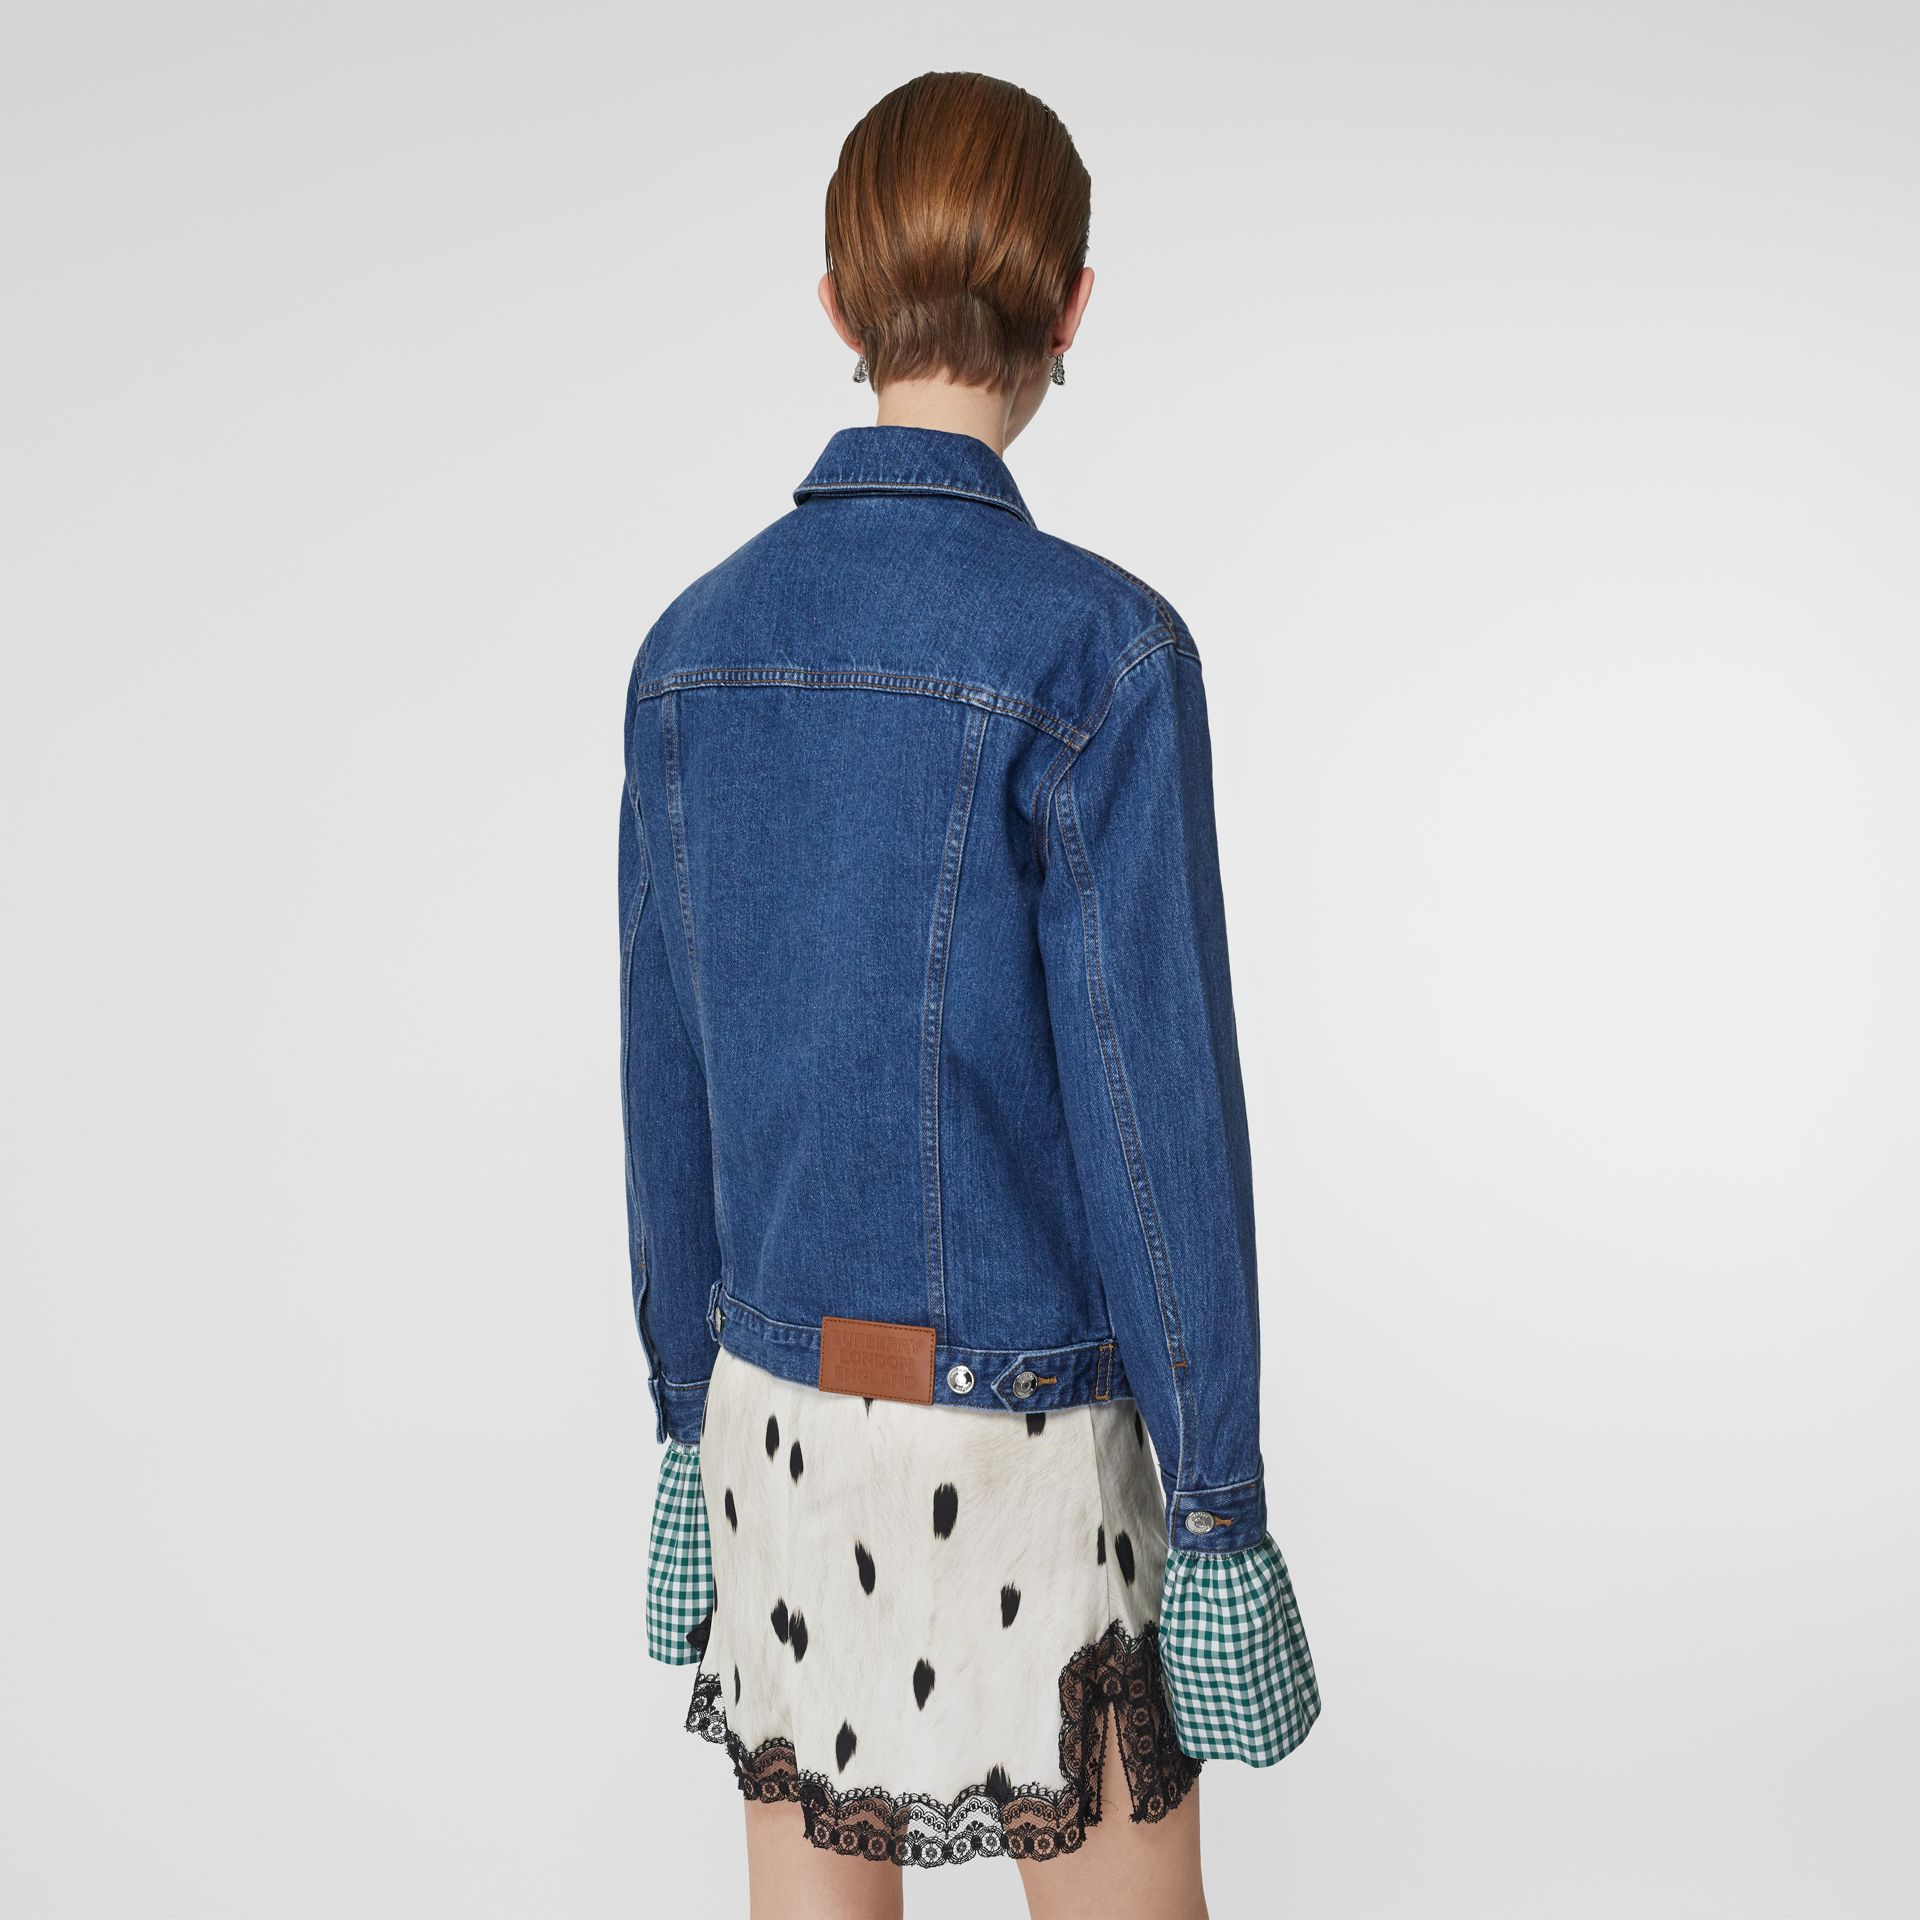 Deer Motif Japanese Denim Jacket in Mid Blue - Women | Burberry Singapore - gallery image 2